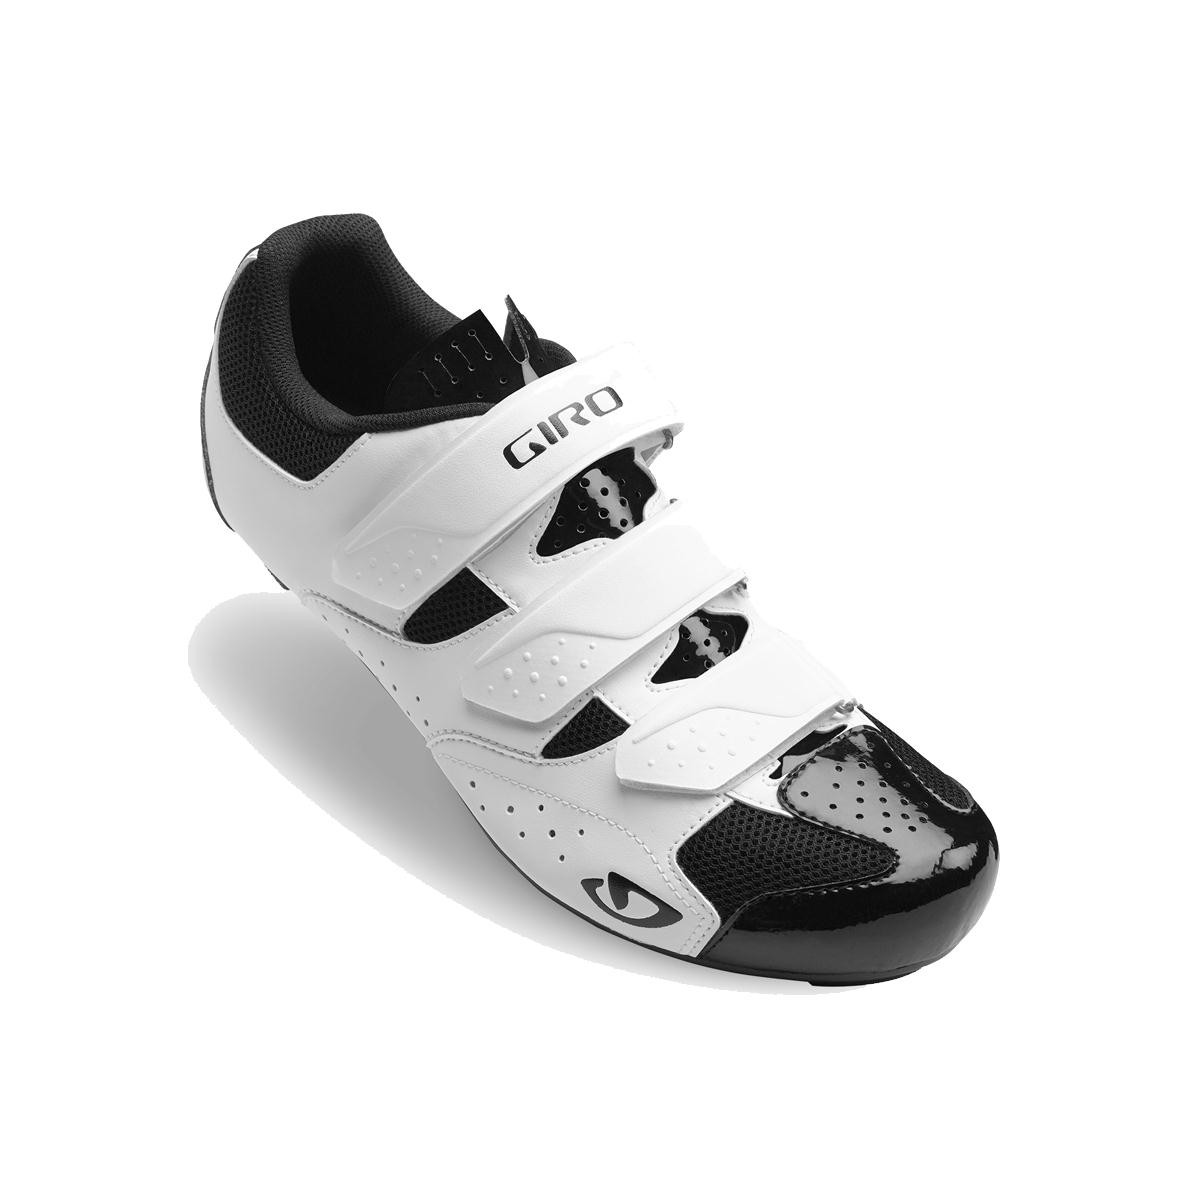 GIRO Techne Road Cycling Shoes 2018 White/Black 44